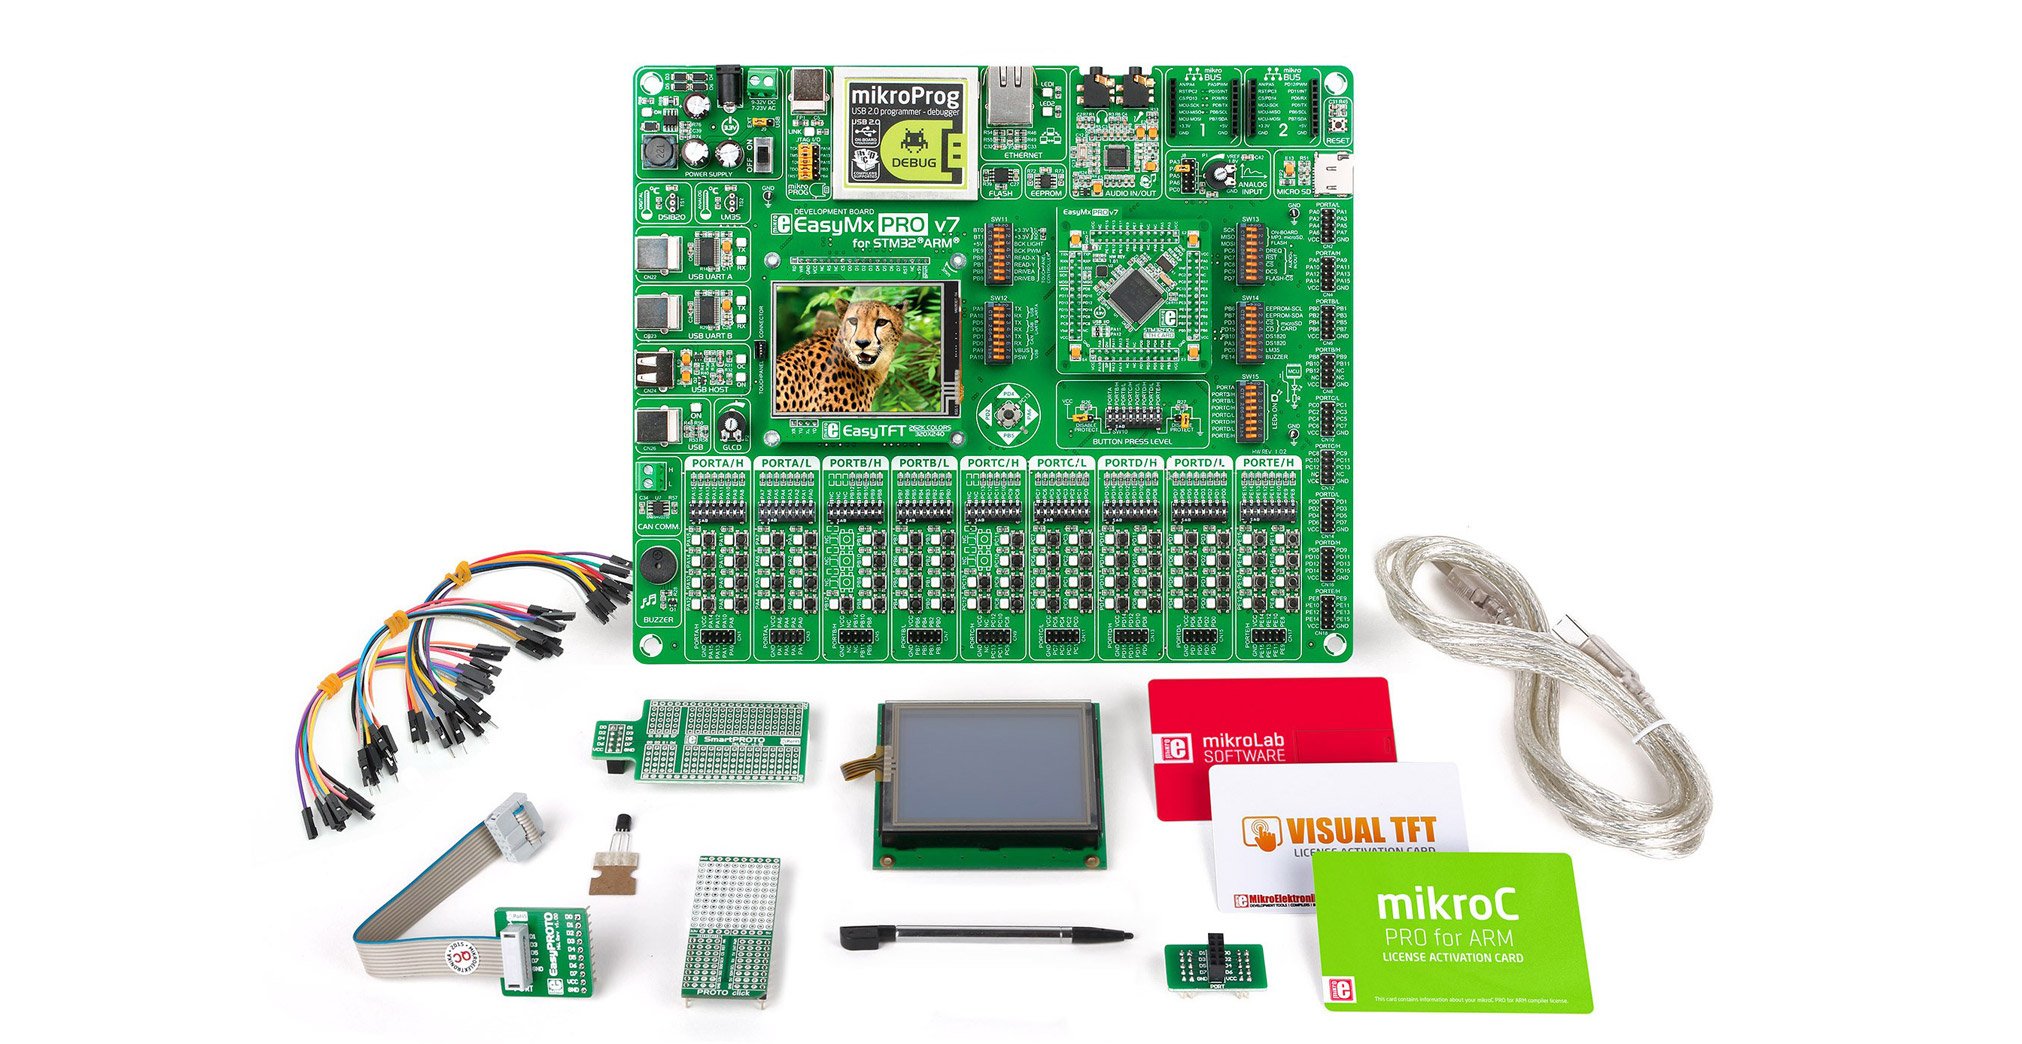 mikrolab kits for stm32